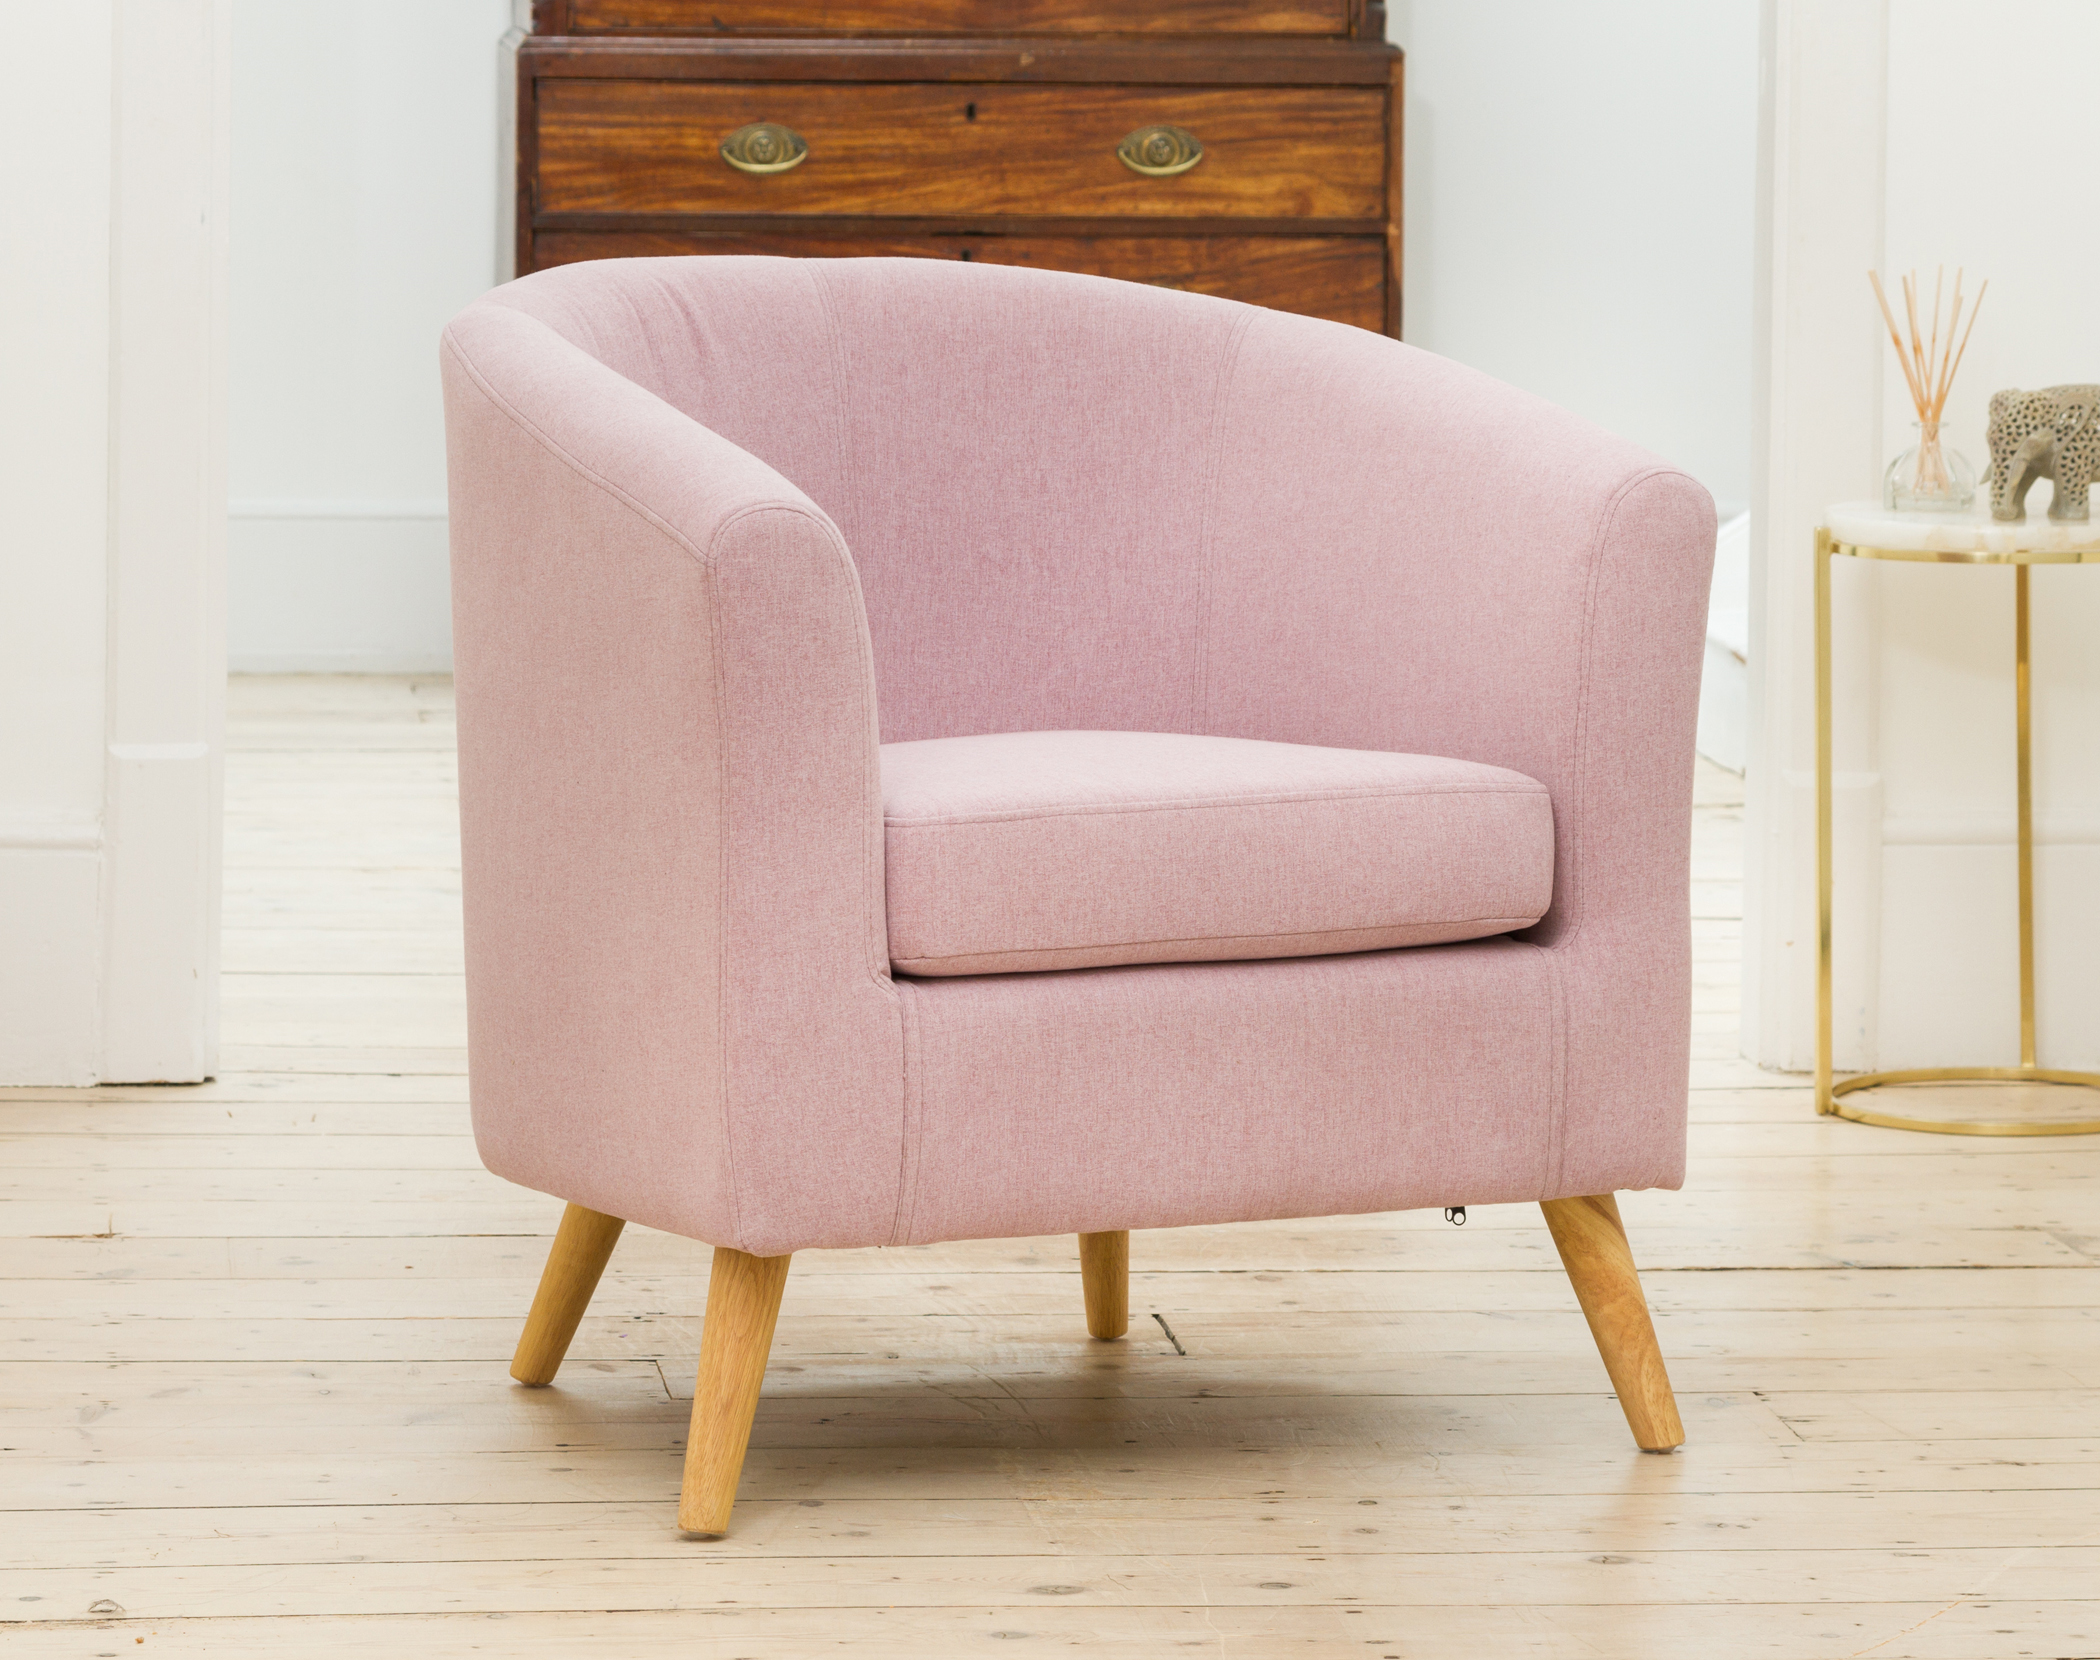 Wycombe Tub Chair pastel lilac